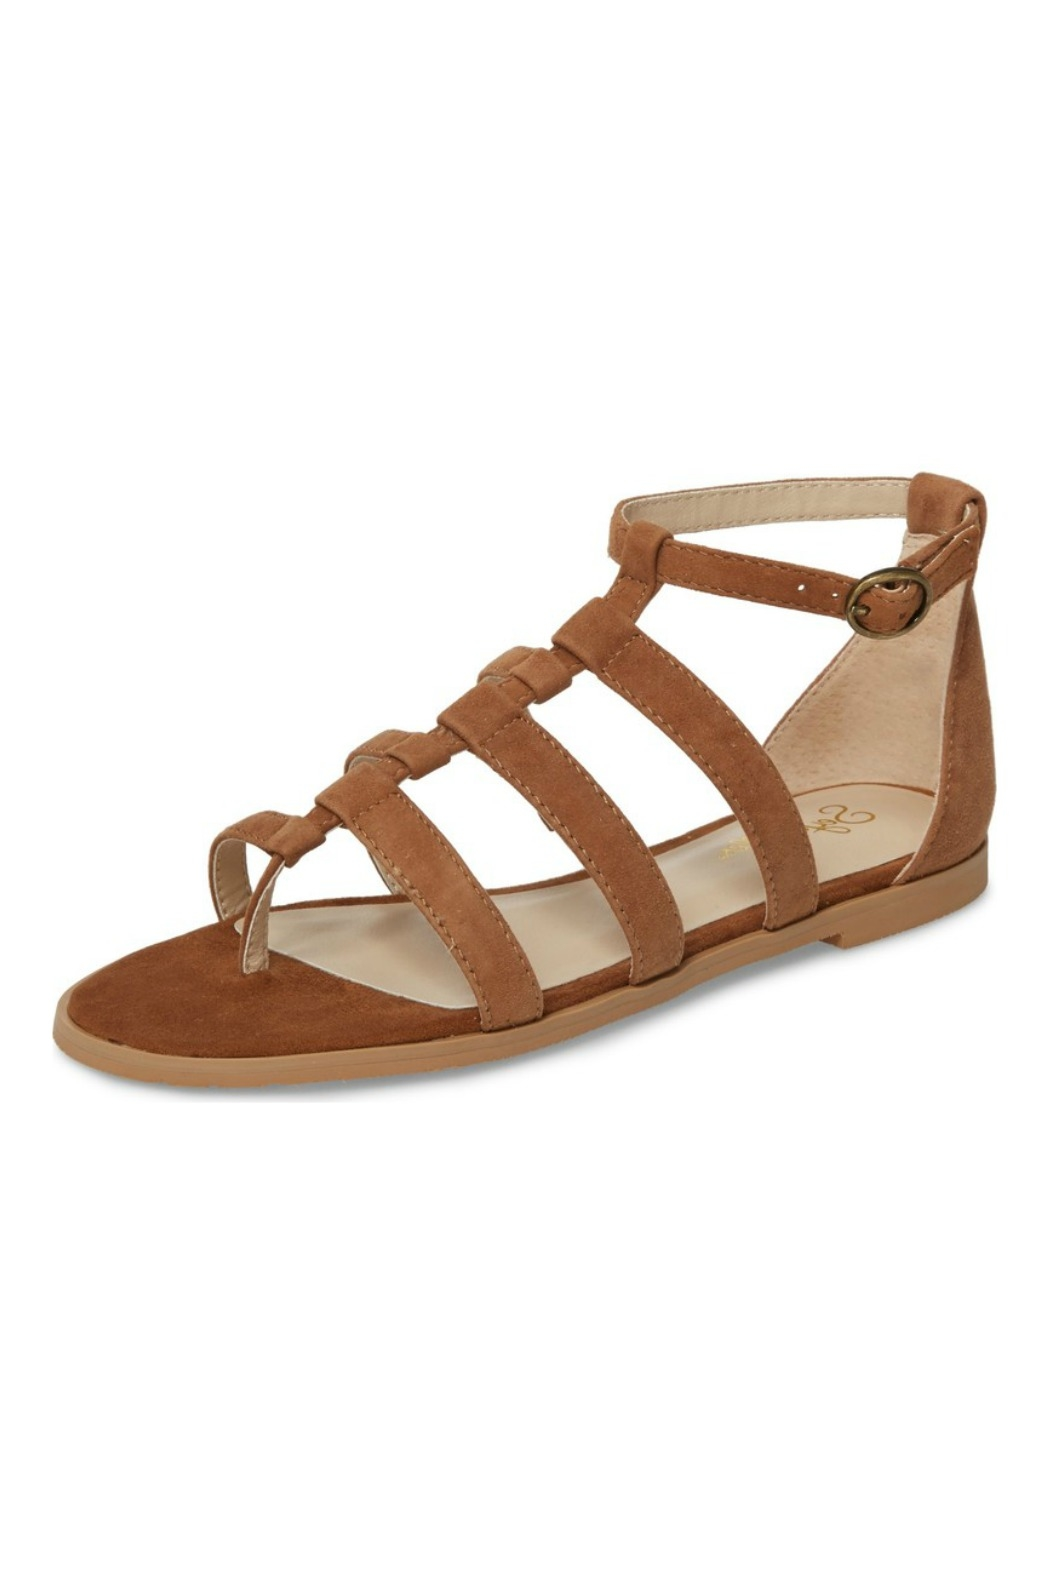 ff0a40e7087 Seychelles Shoes Contribution Tan Suede Sandal - Front Cropped Image